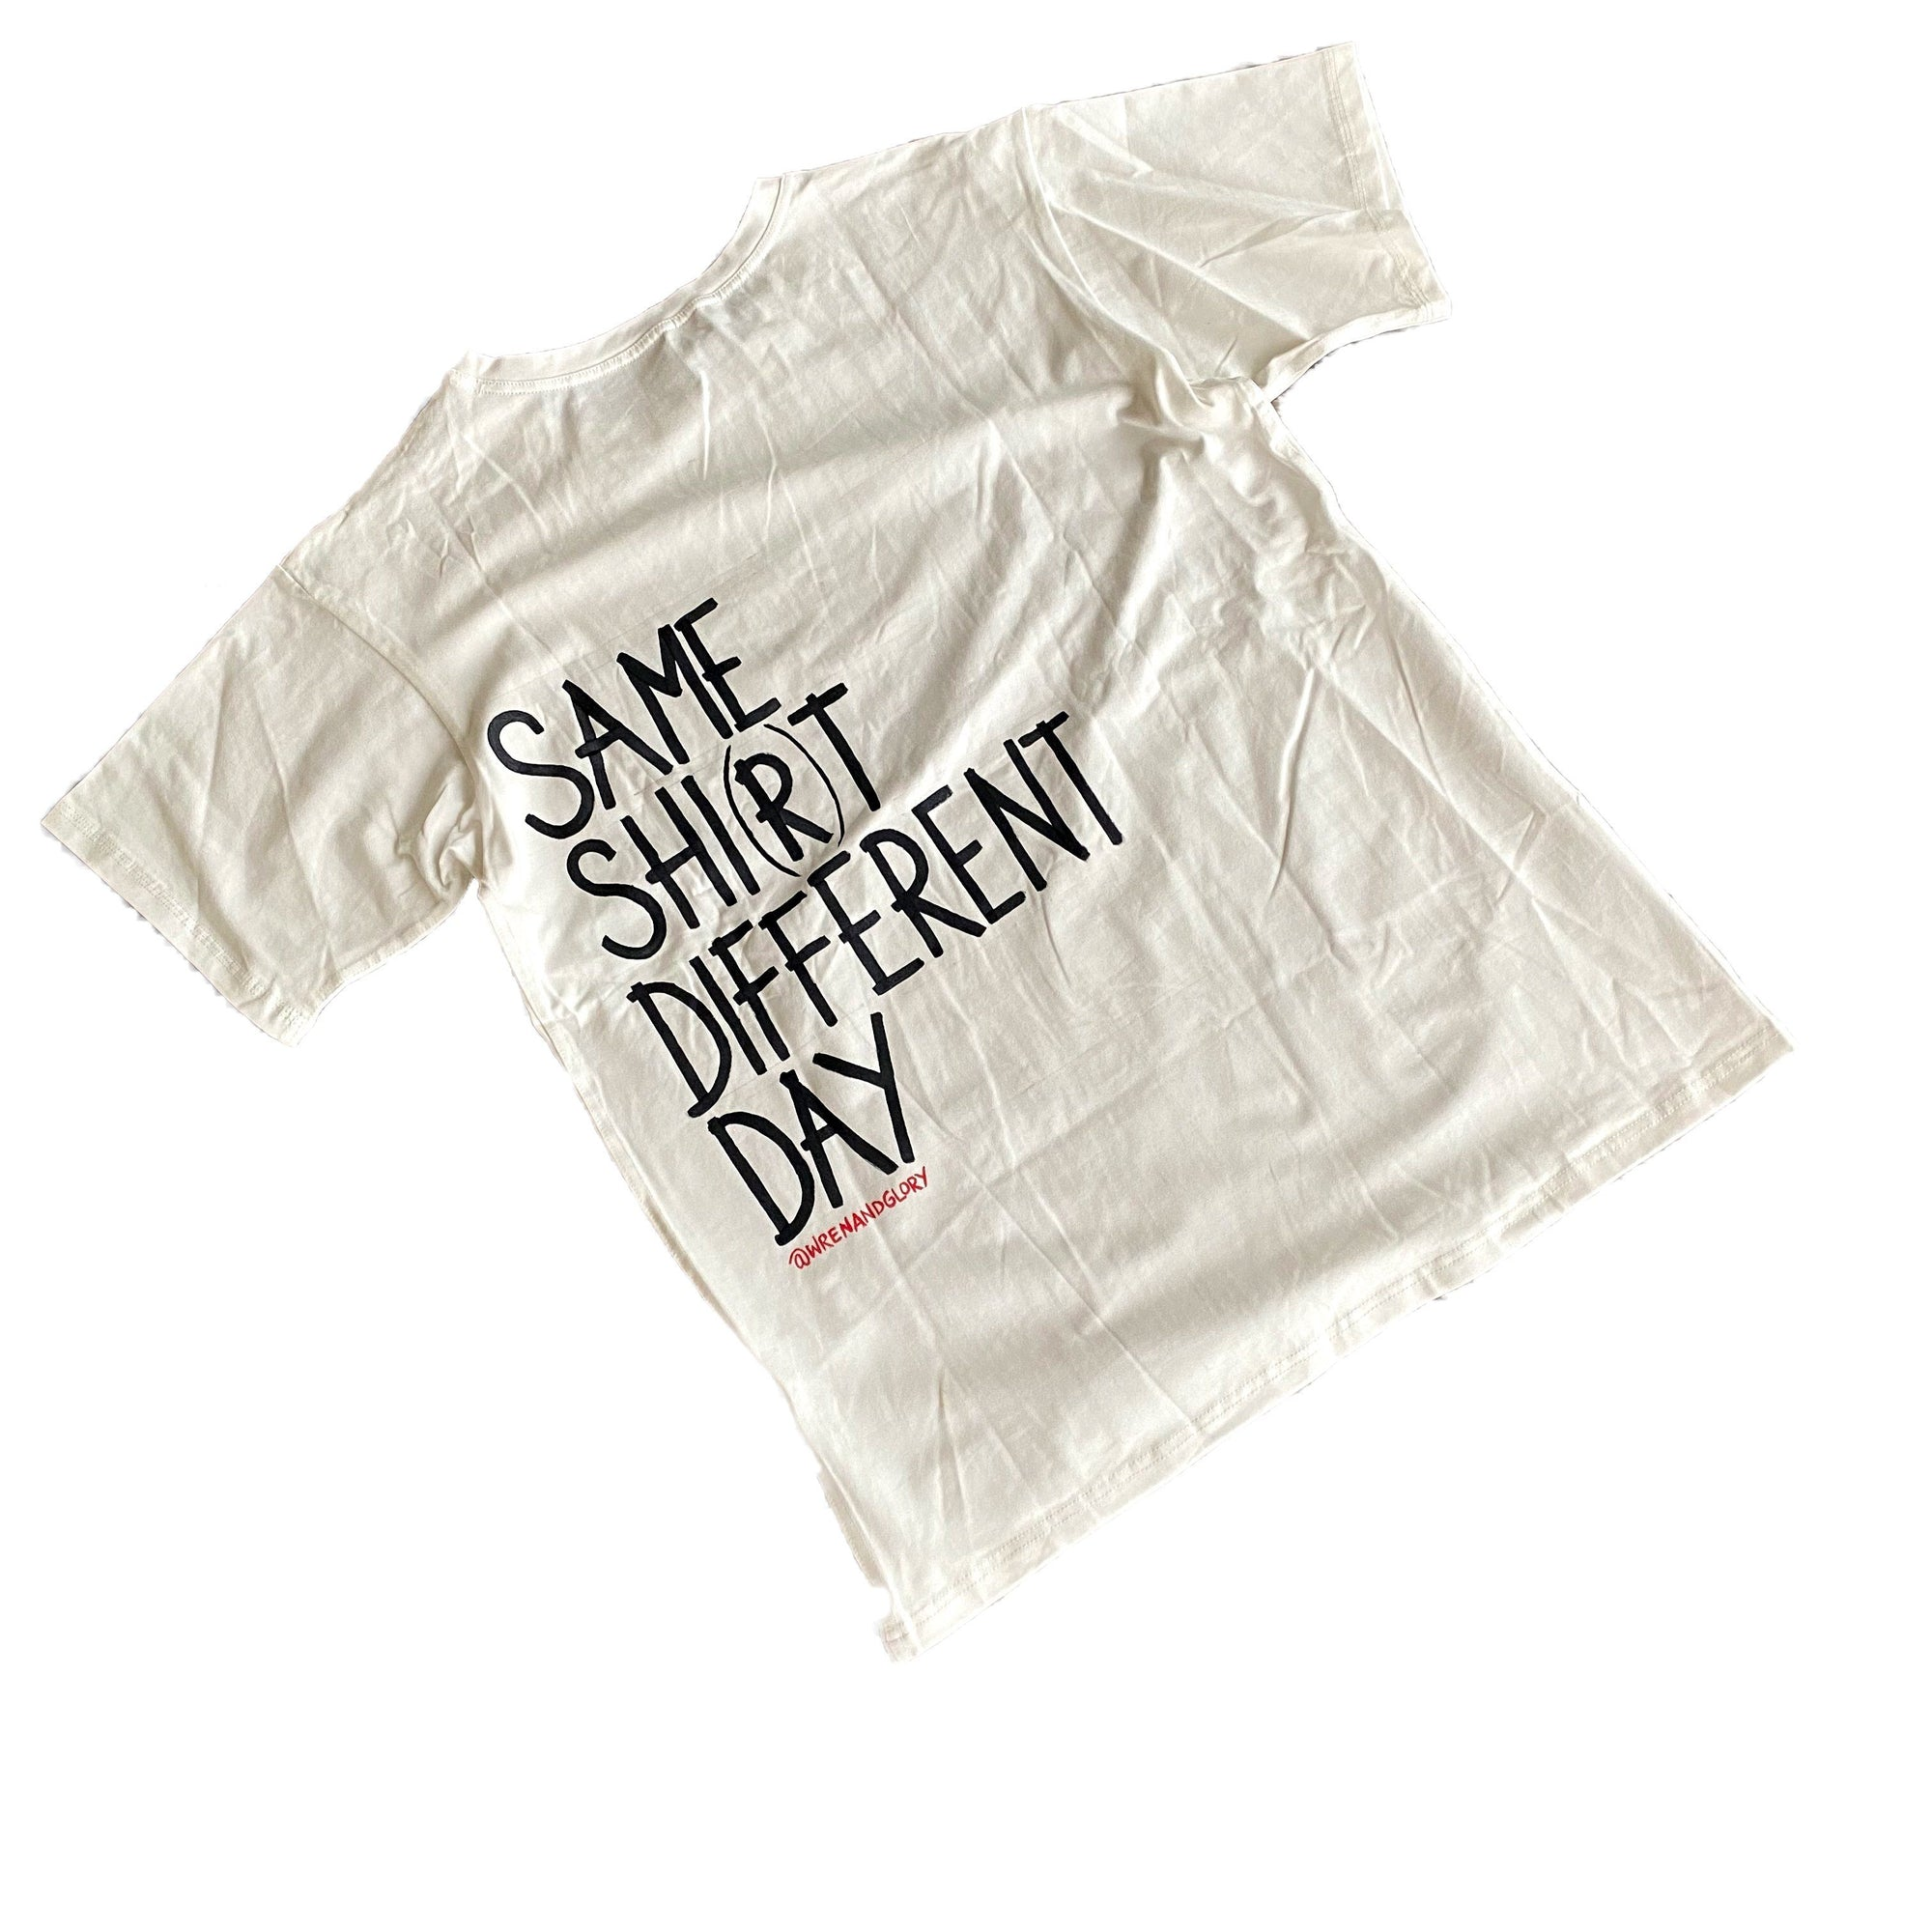 'SAME SH*T' PAINTED T SHIRT